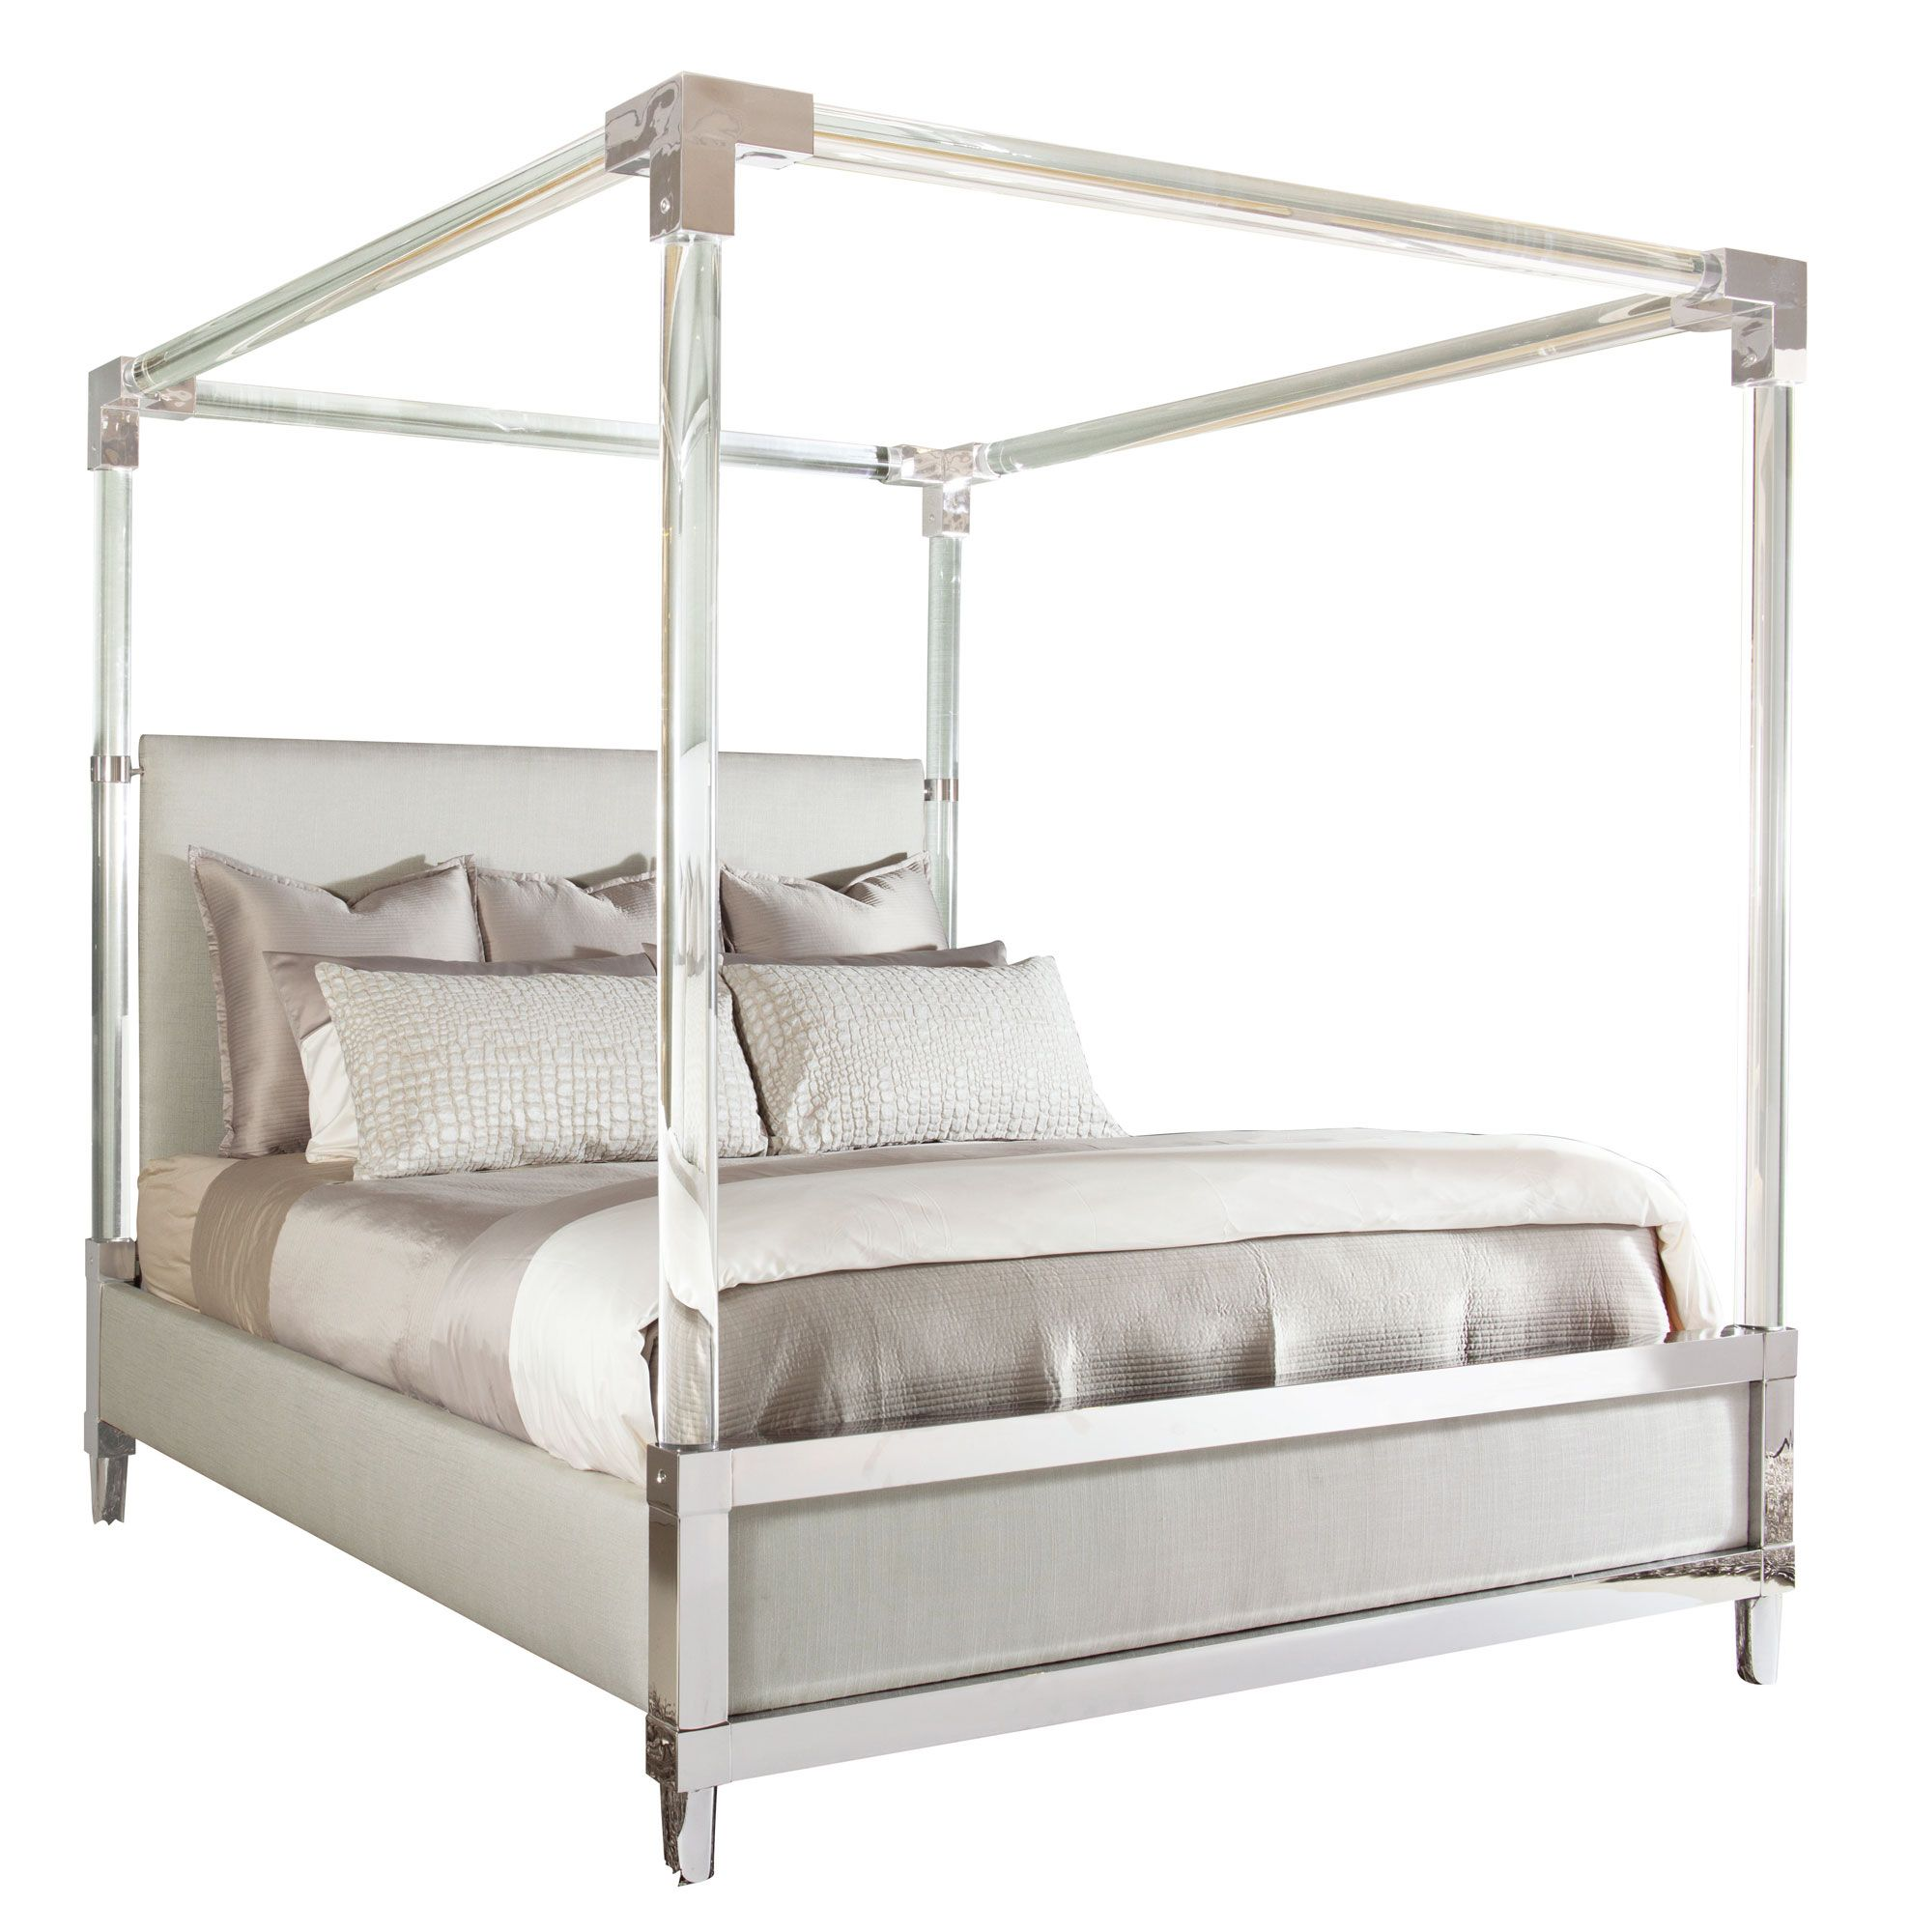 Acrylic Canopy Bed Bernhardt With Images Canopy Bedroom